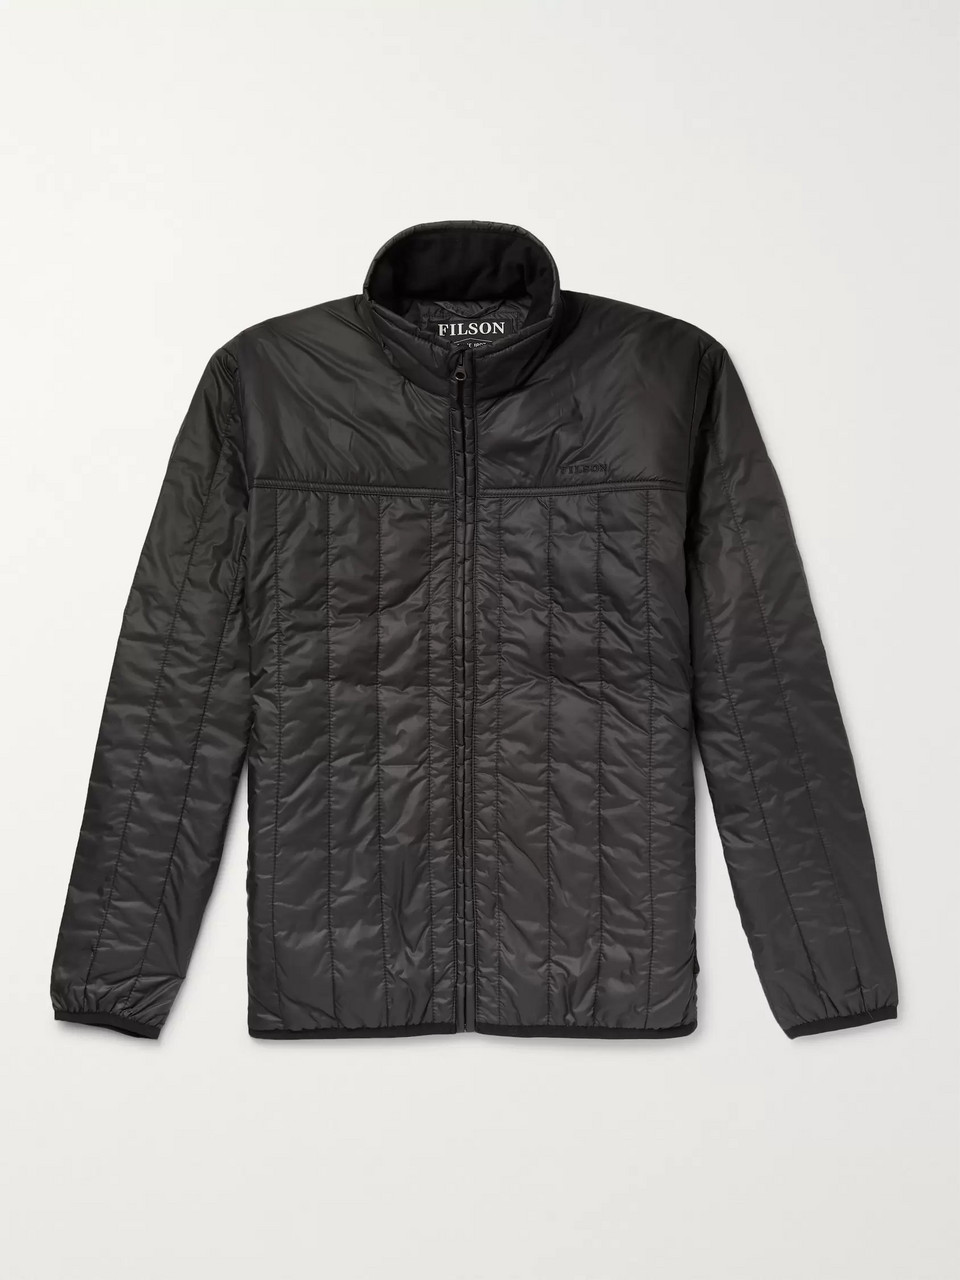 Filson Quilted Ripstop PrimaLoft Jacket